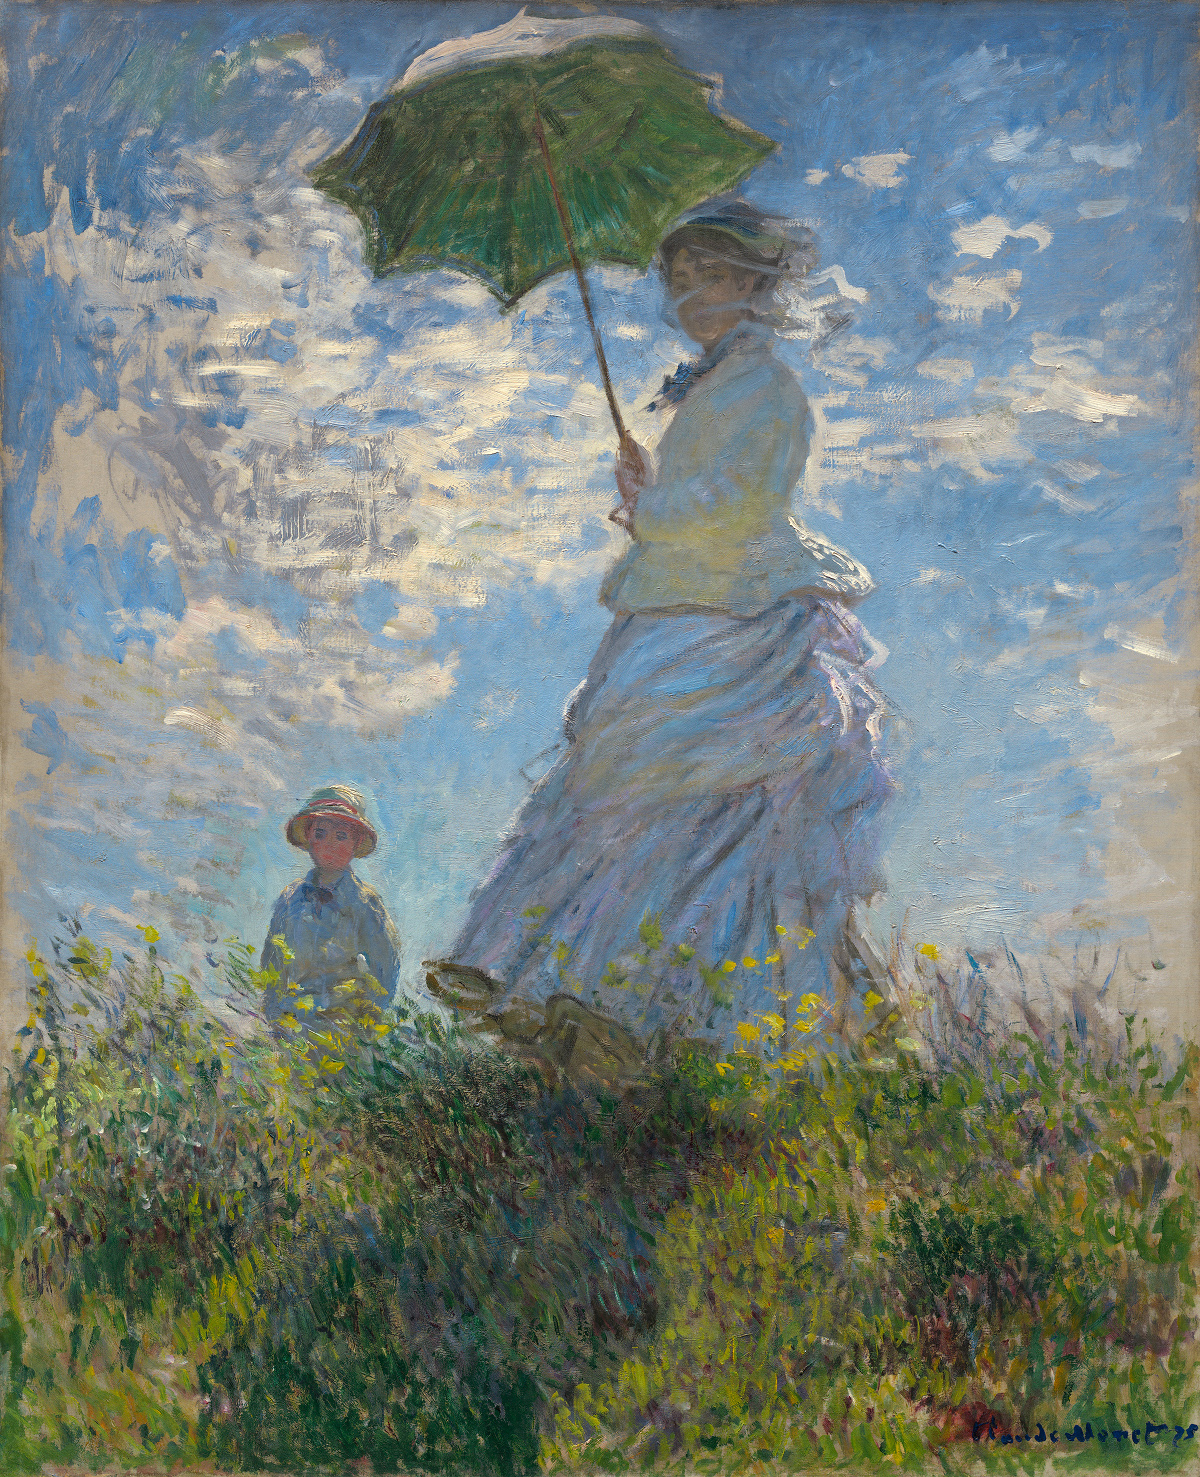 Woman with a Parasol - Madame Monet and Her Son by Claude Monet, 1875